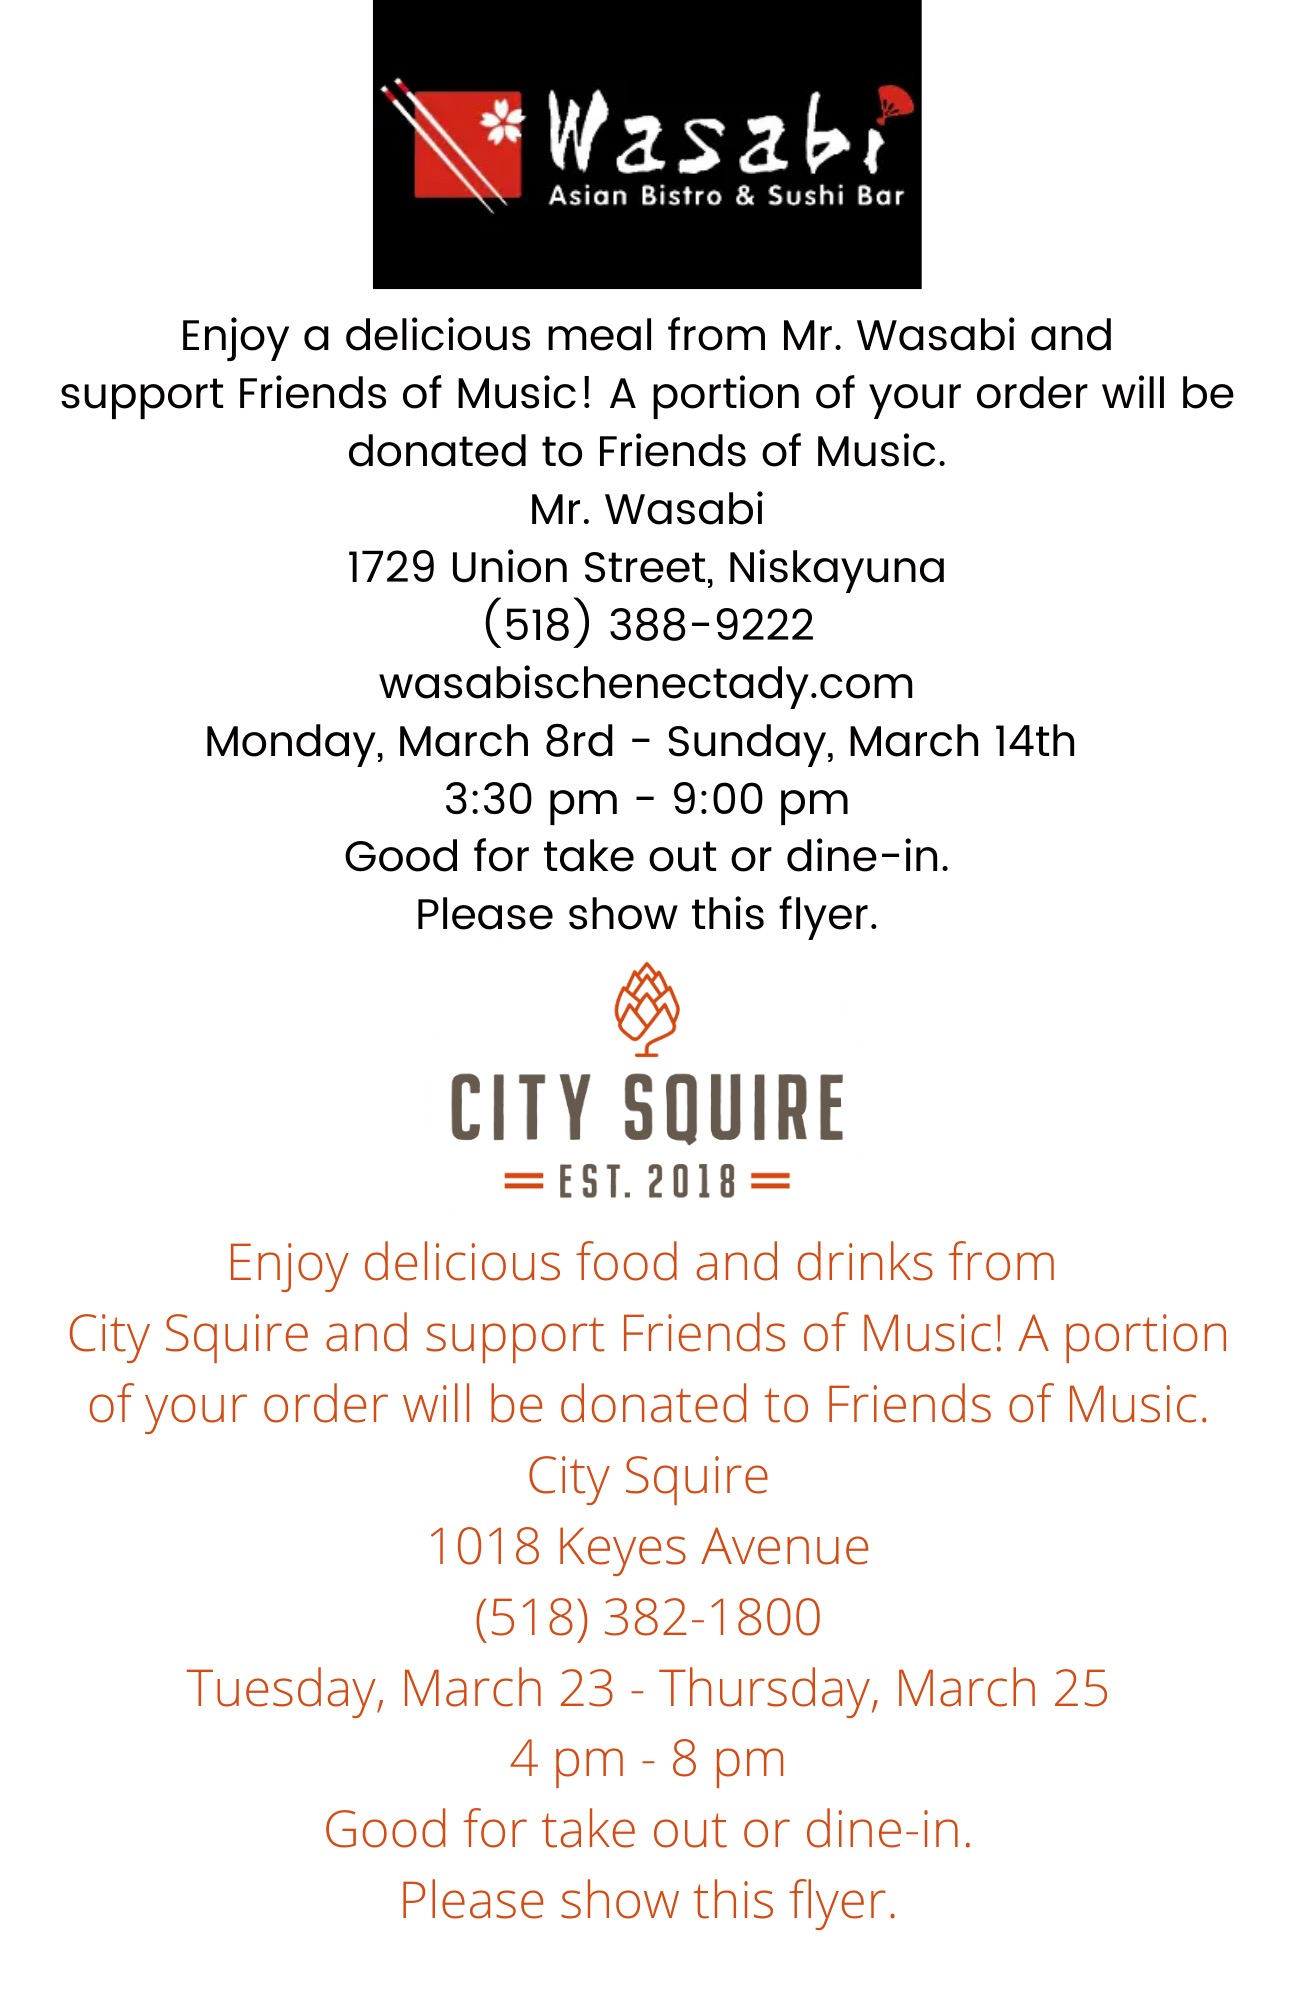 Flyer for Mr. Wasabi and City Squire